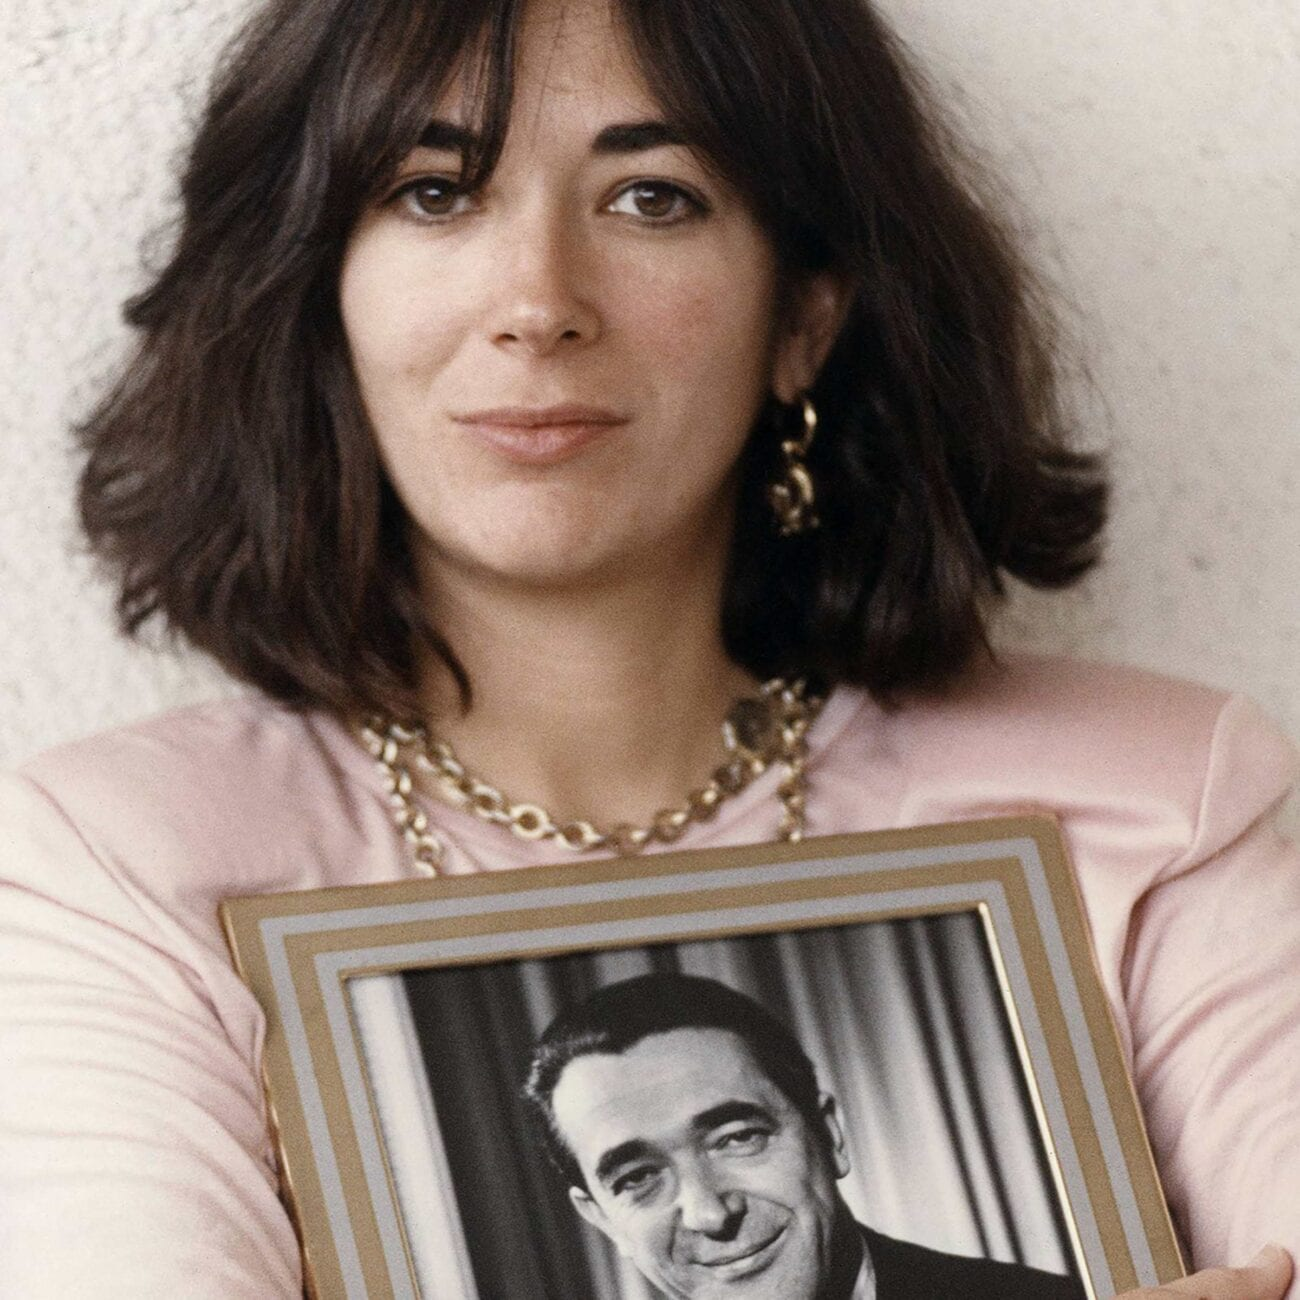 Ghislaine Maxwell is the former girlfriend of disgraced financier & convicted sex offender Jeffrey Epstein. Could she be granted bail?